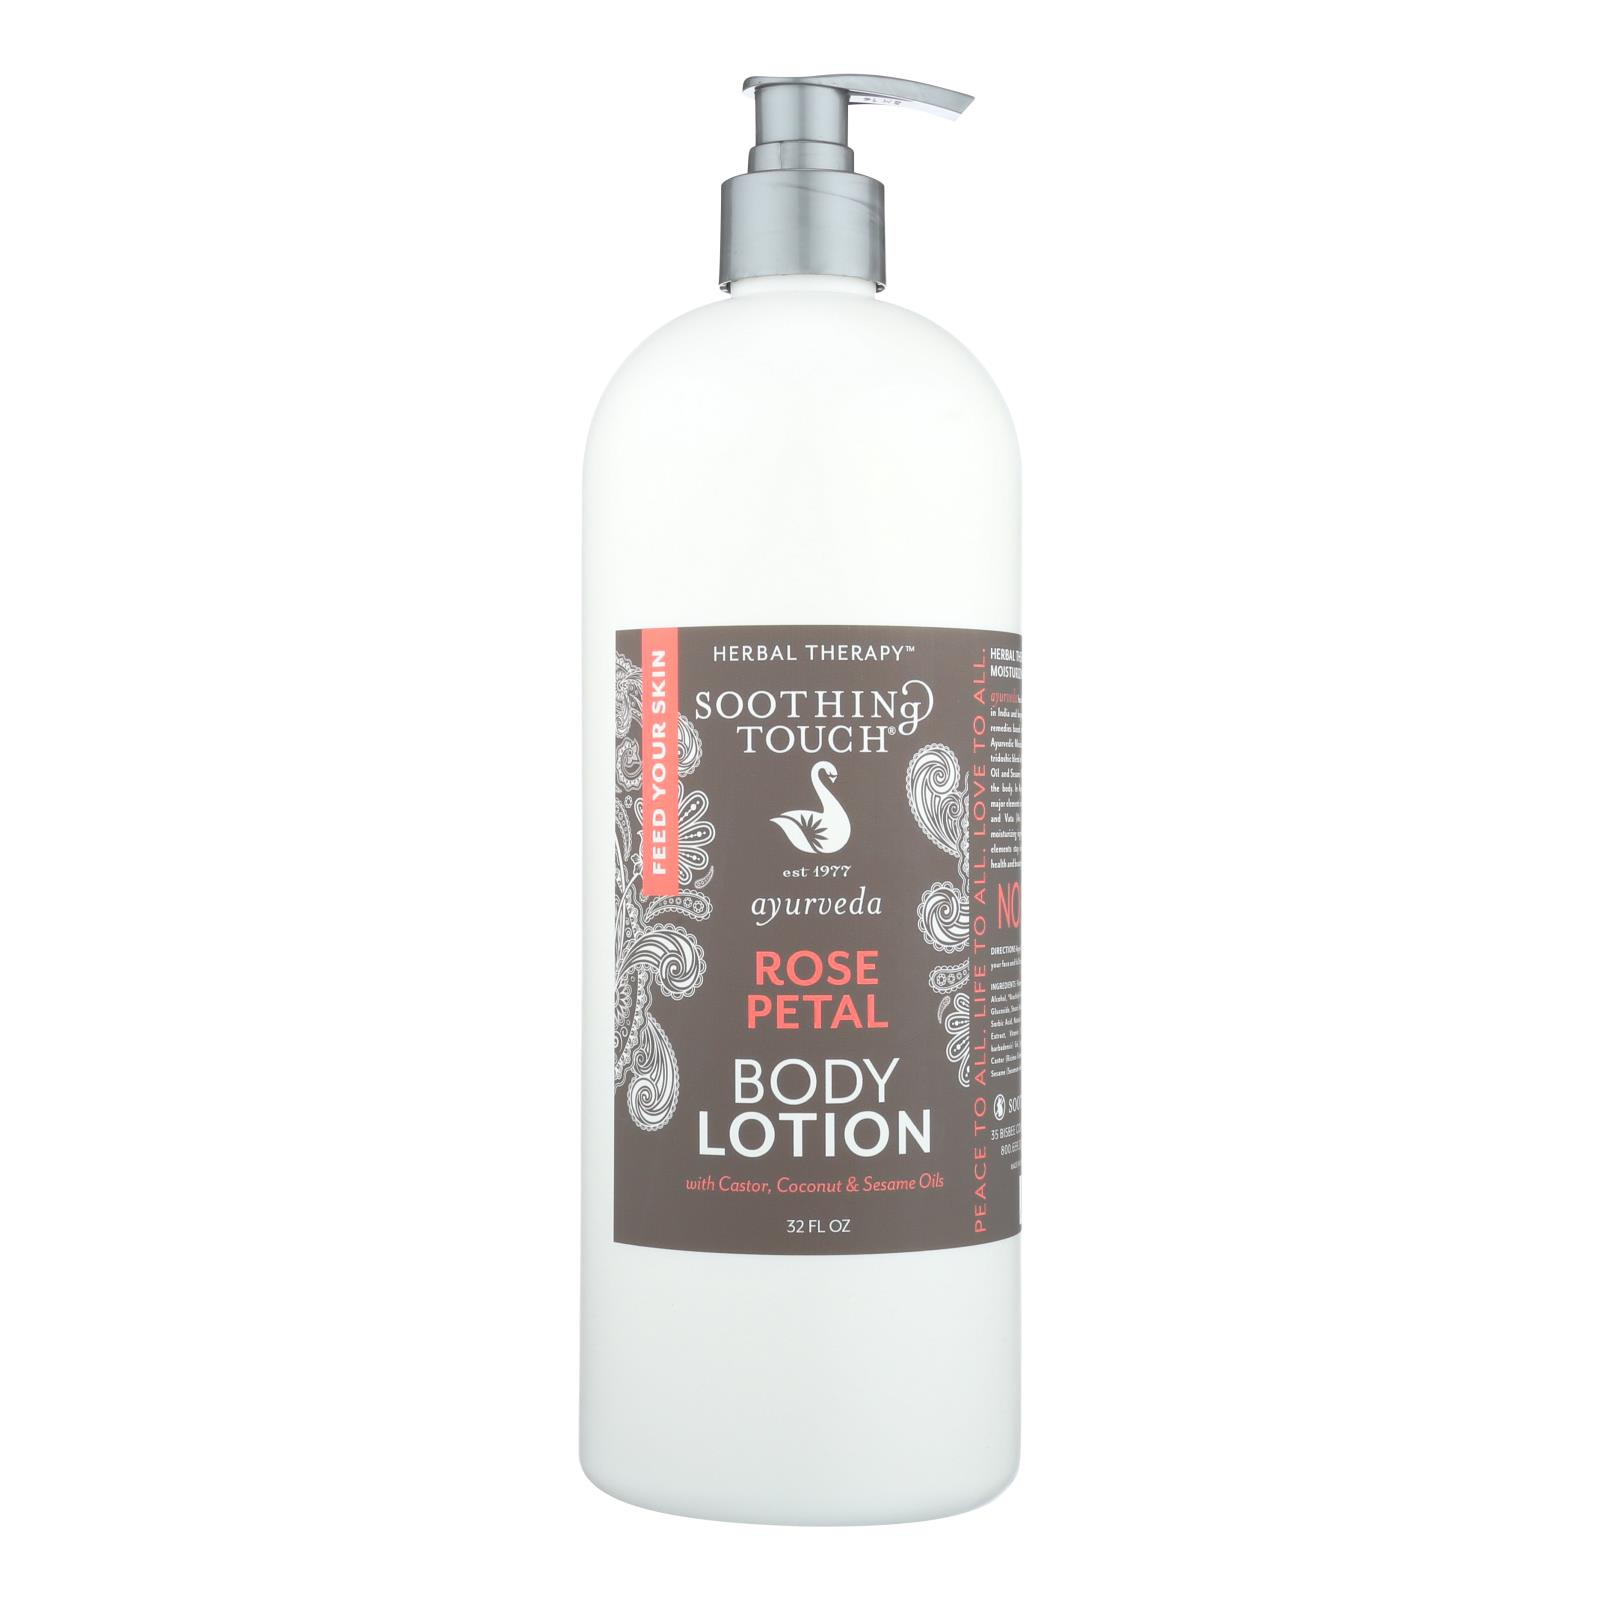 Soothing Touch - Rose Petal Body Lotion - 32 FZ